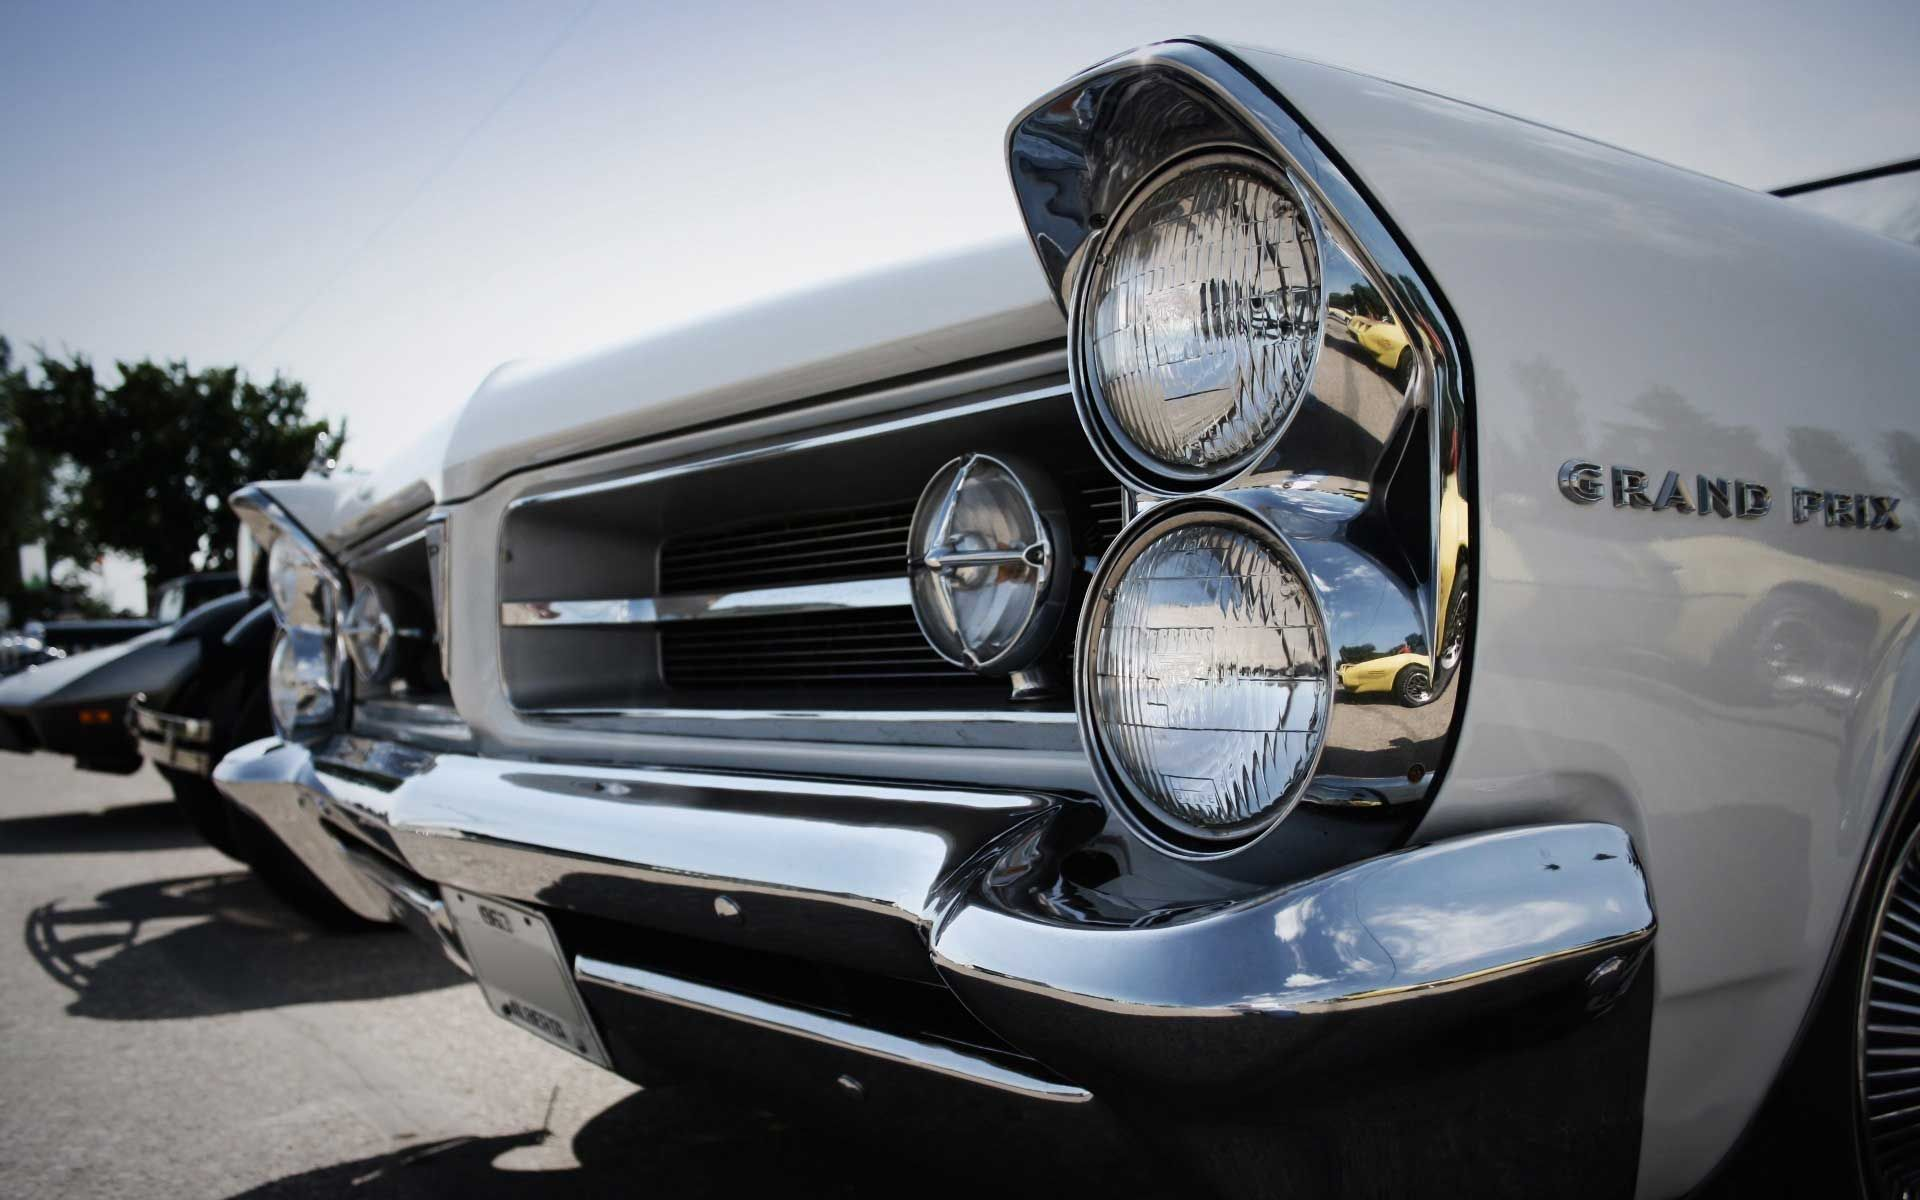 stylish-classic-cars-hd-wallpapers-vintage-latest-vintage-car ...